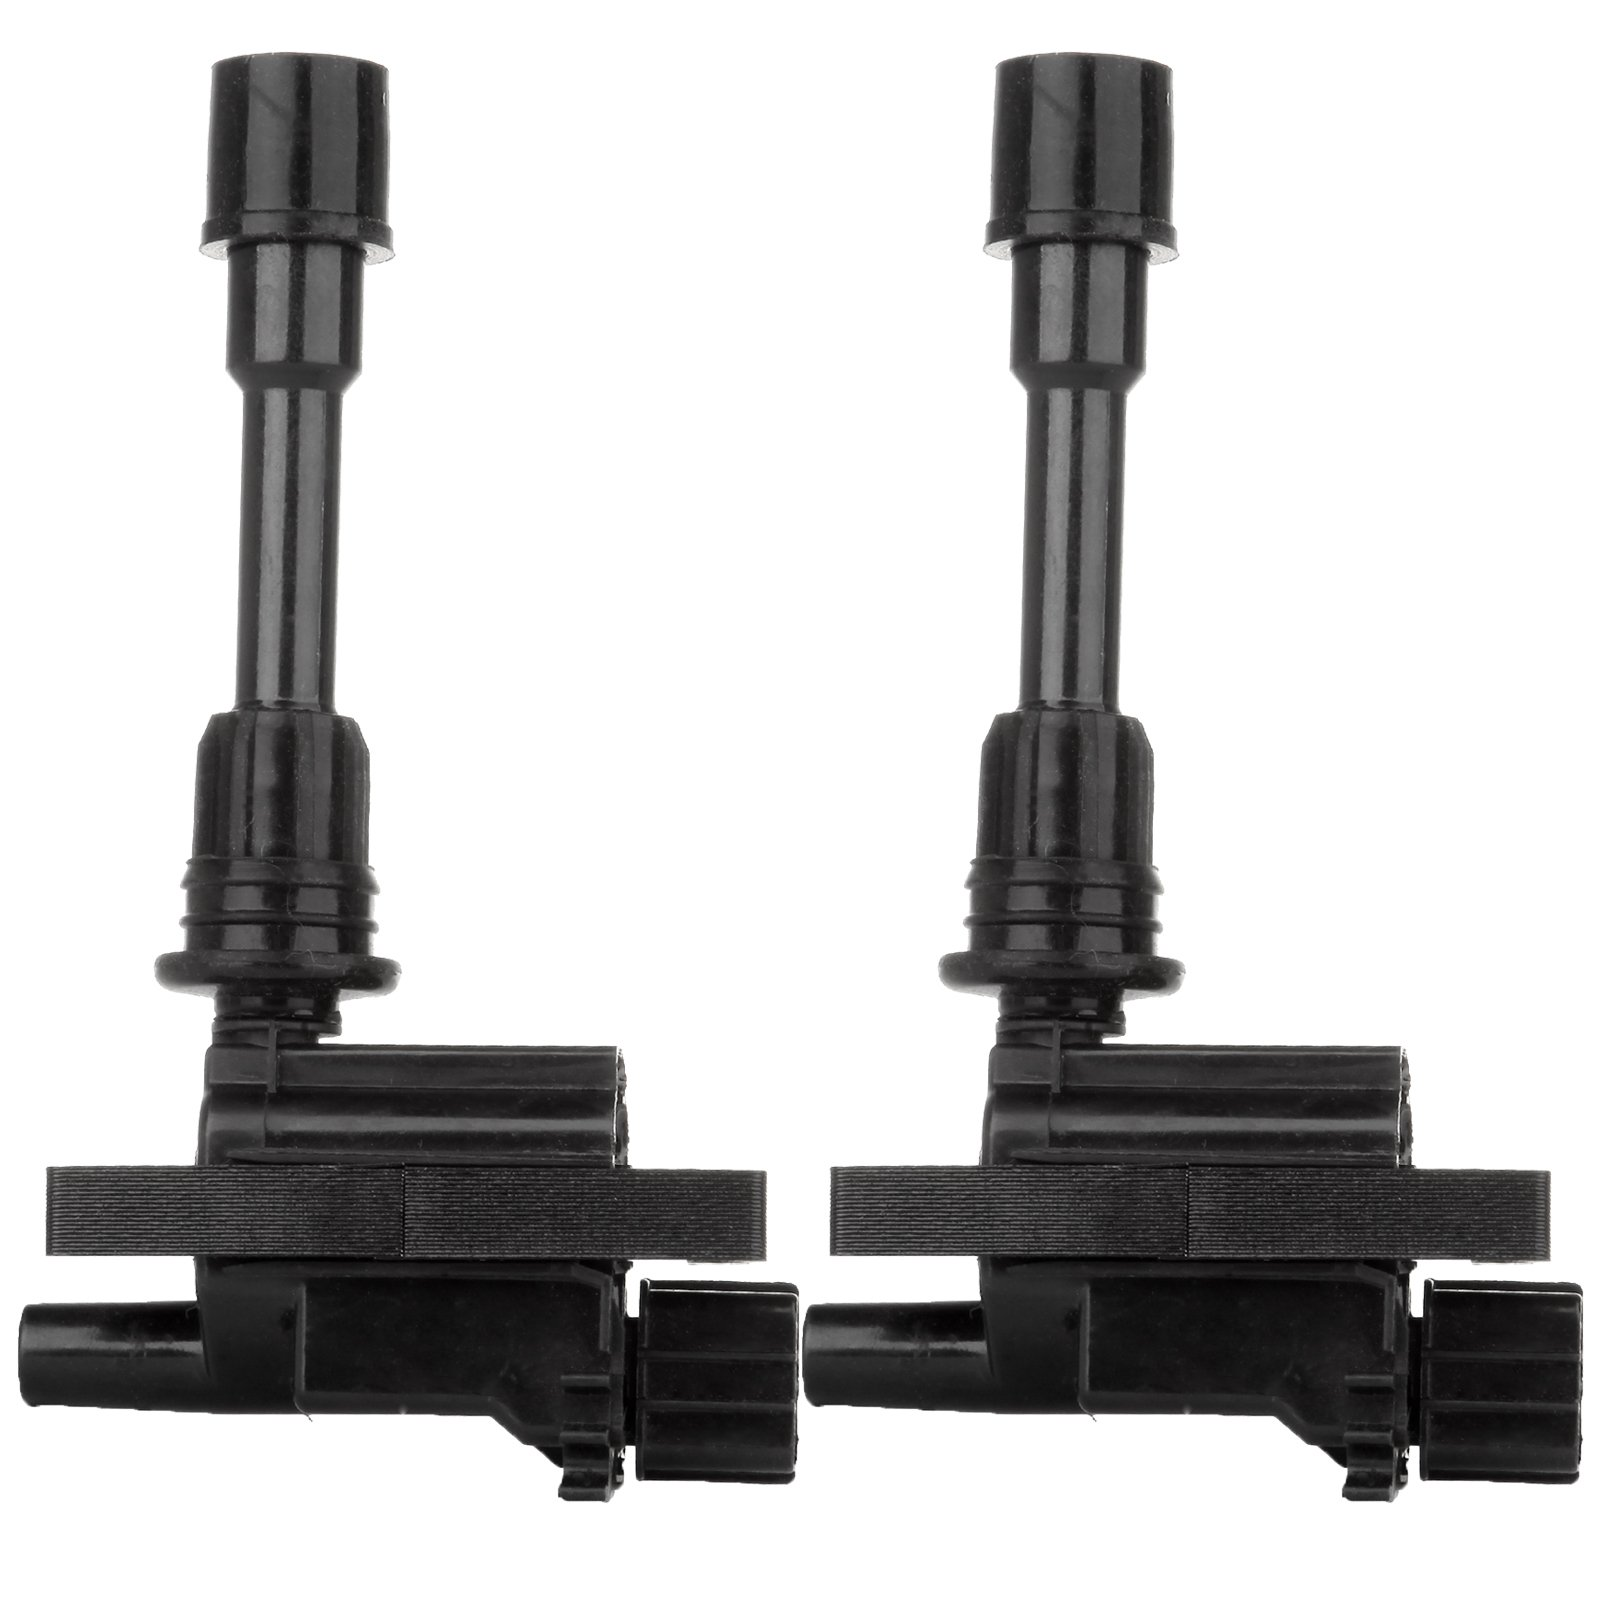 ECCPP Ignition Coils on Plug Pencil for Mazda Protege 2.0L L4 UF407 5C1208 C1340(Pack of 2)